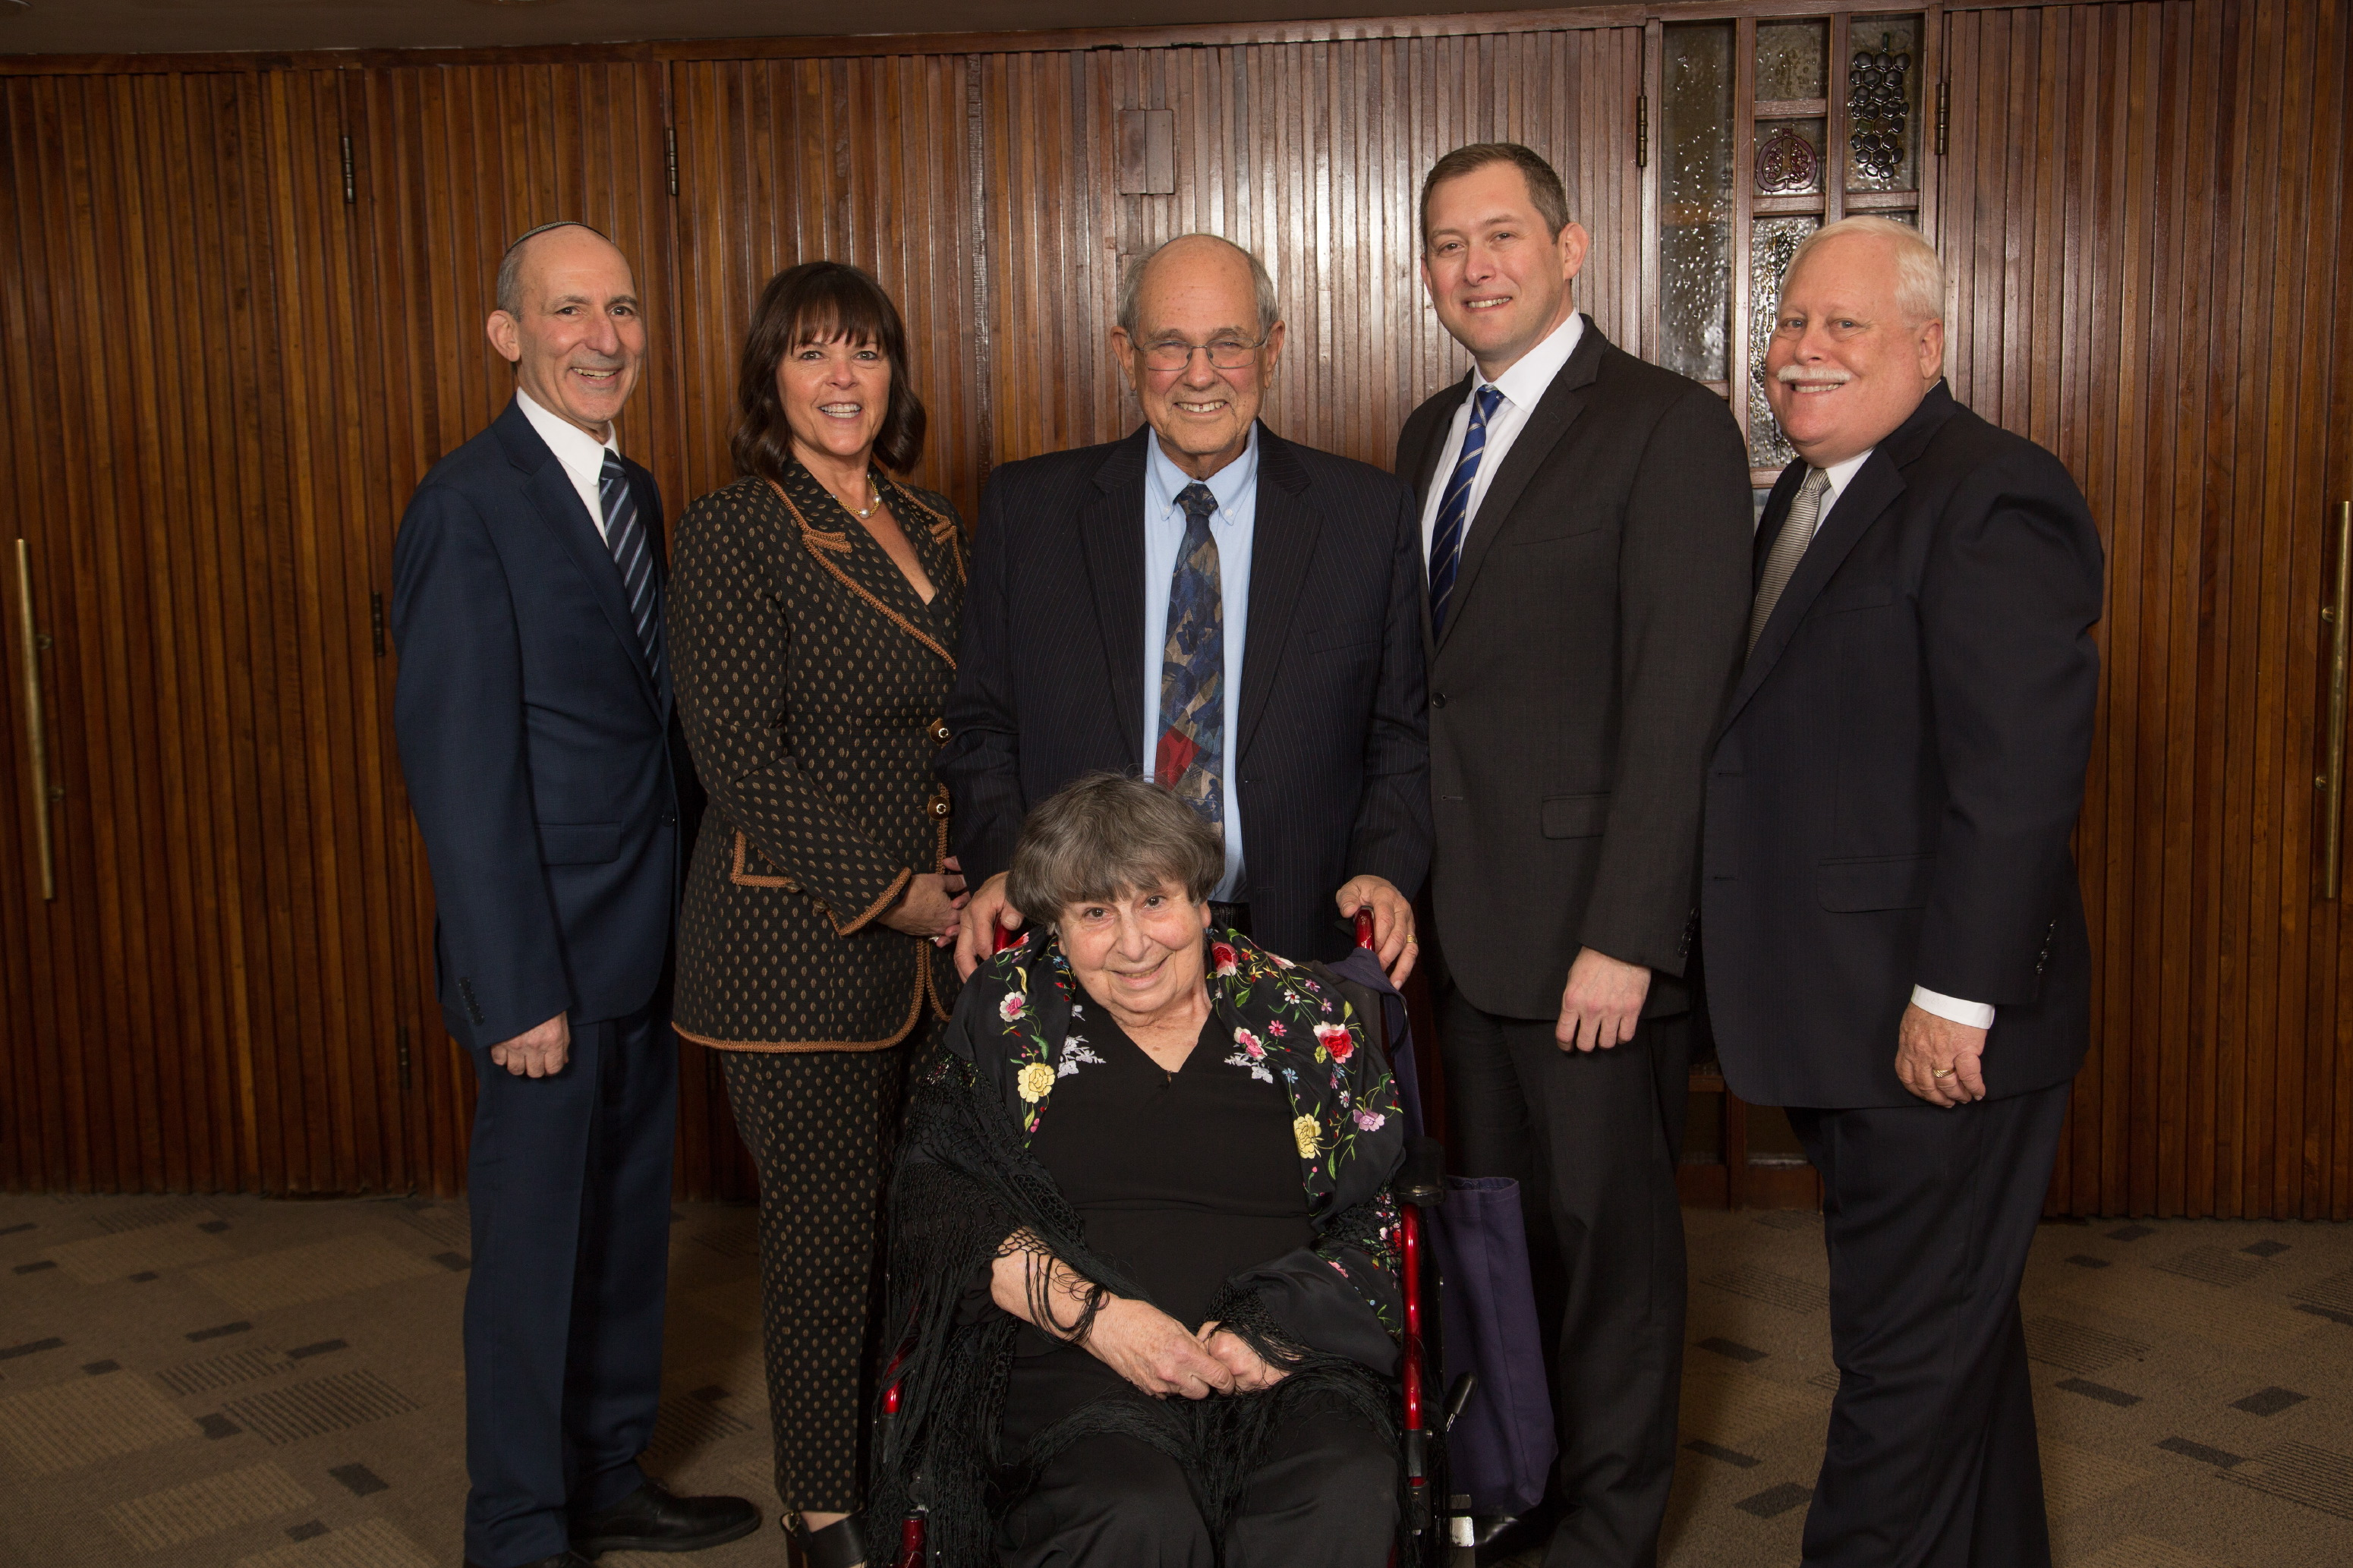 Left to Right: BJE Executive Director Dr. Gil Graff, Honorees Cheryl Davidson, Marlynn Dorff, Rabbi Elliot Dorff, Craig Rutenberg and BJE President Mark Berns